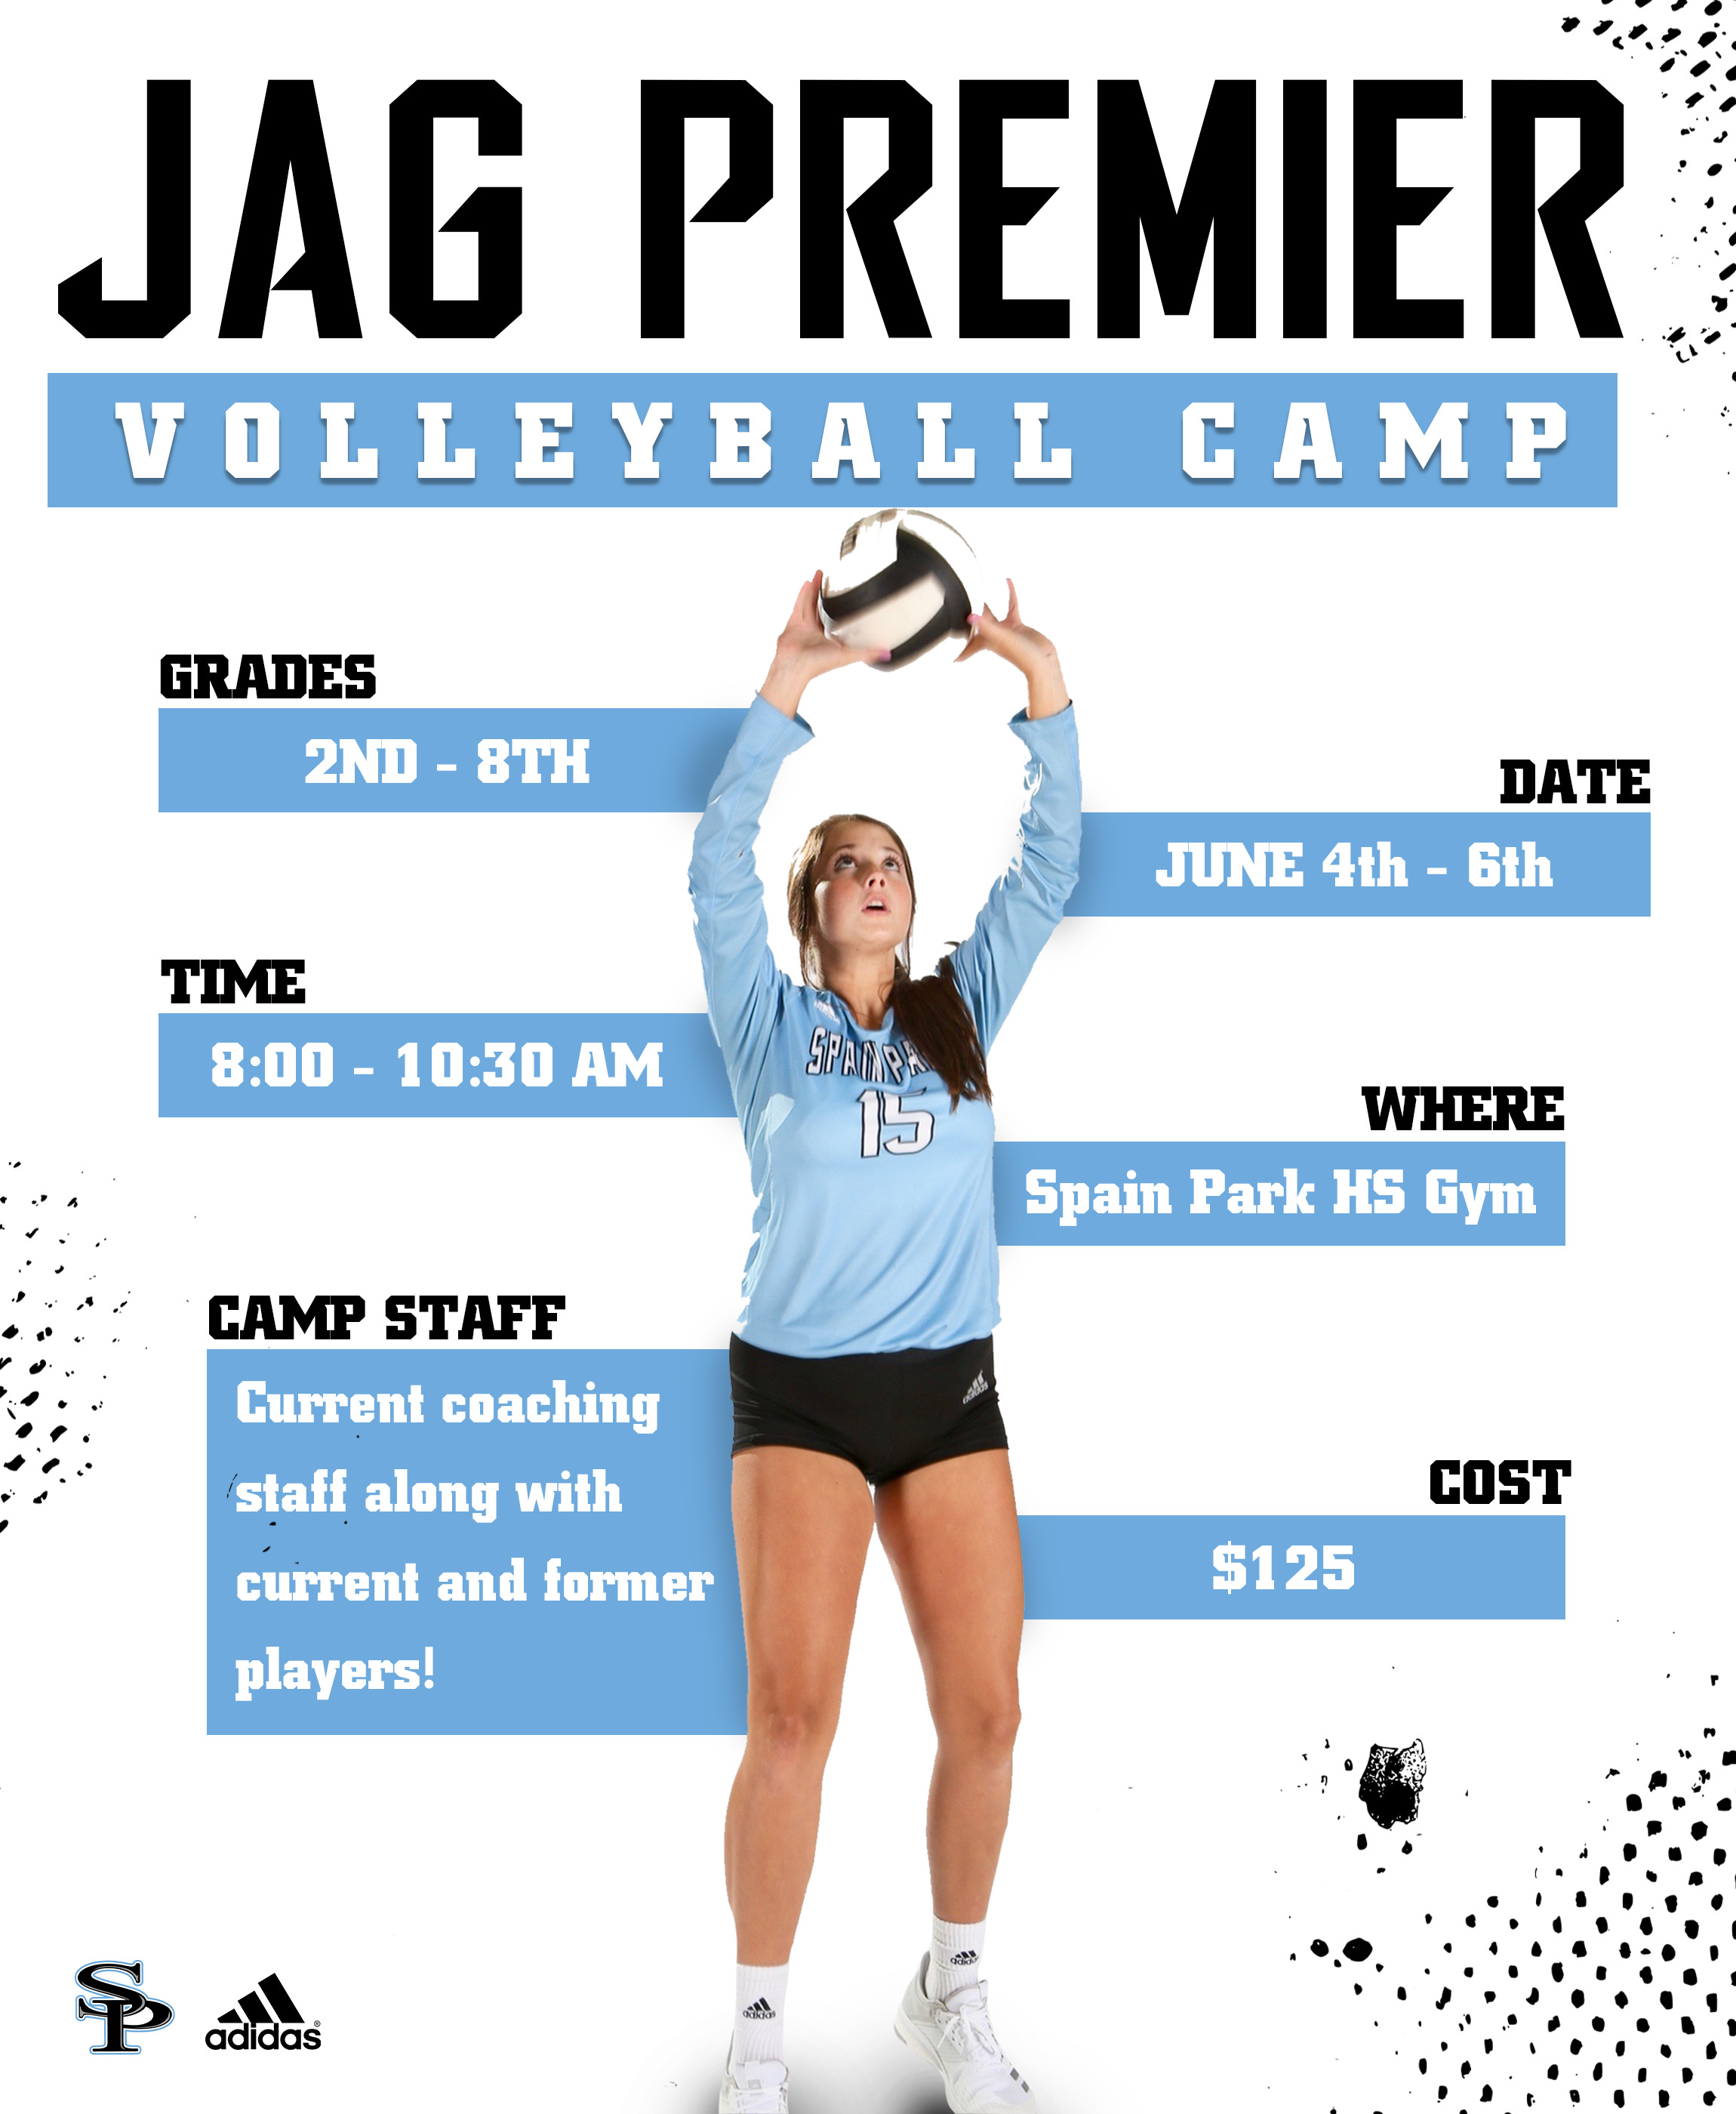 jag premier volleyball camp.jpeg